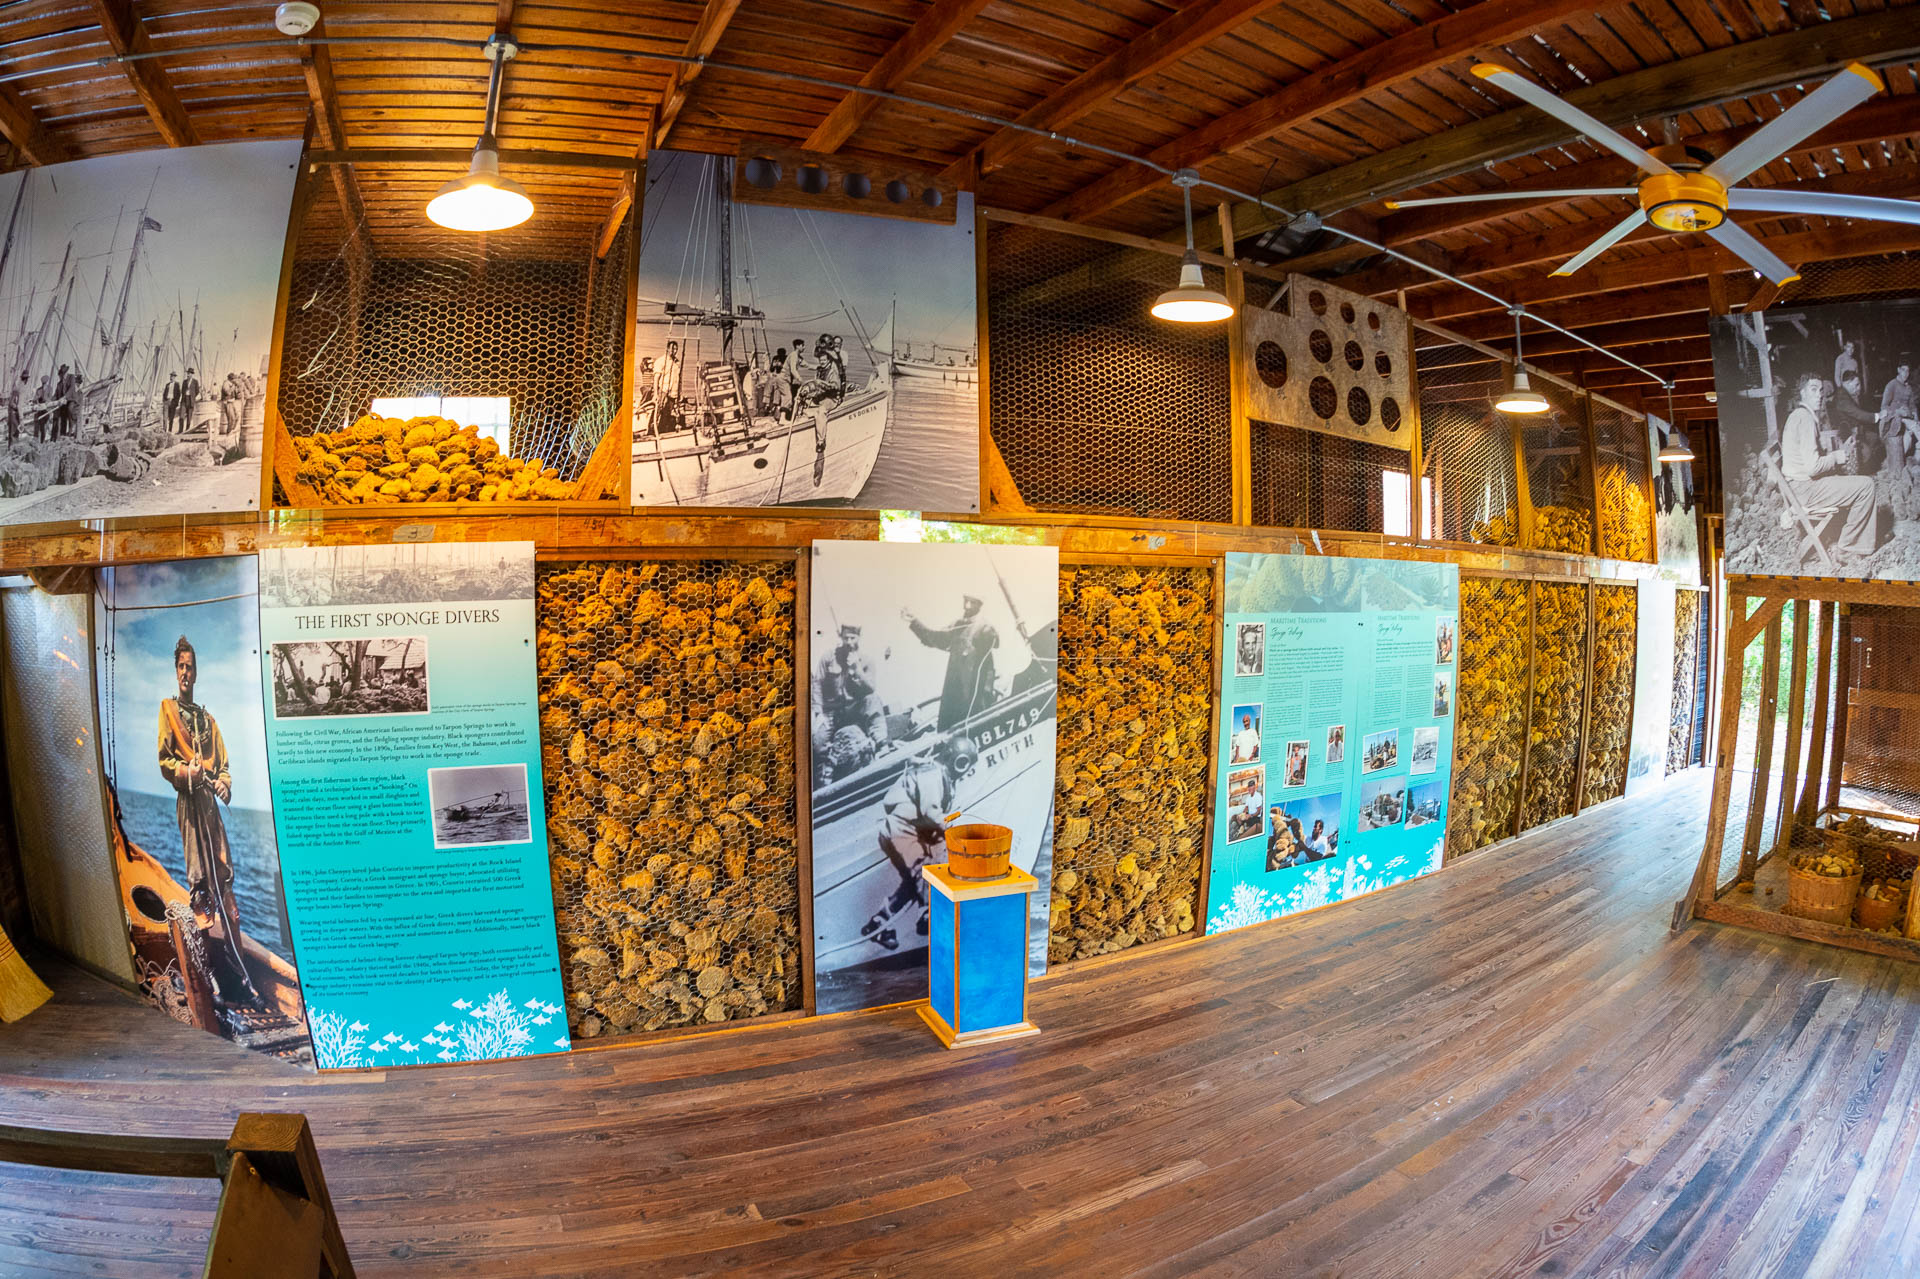 Exhibit within the Sponge Warehouse